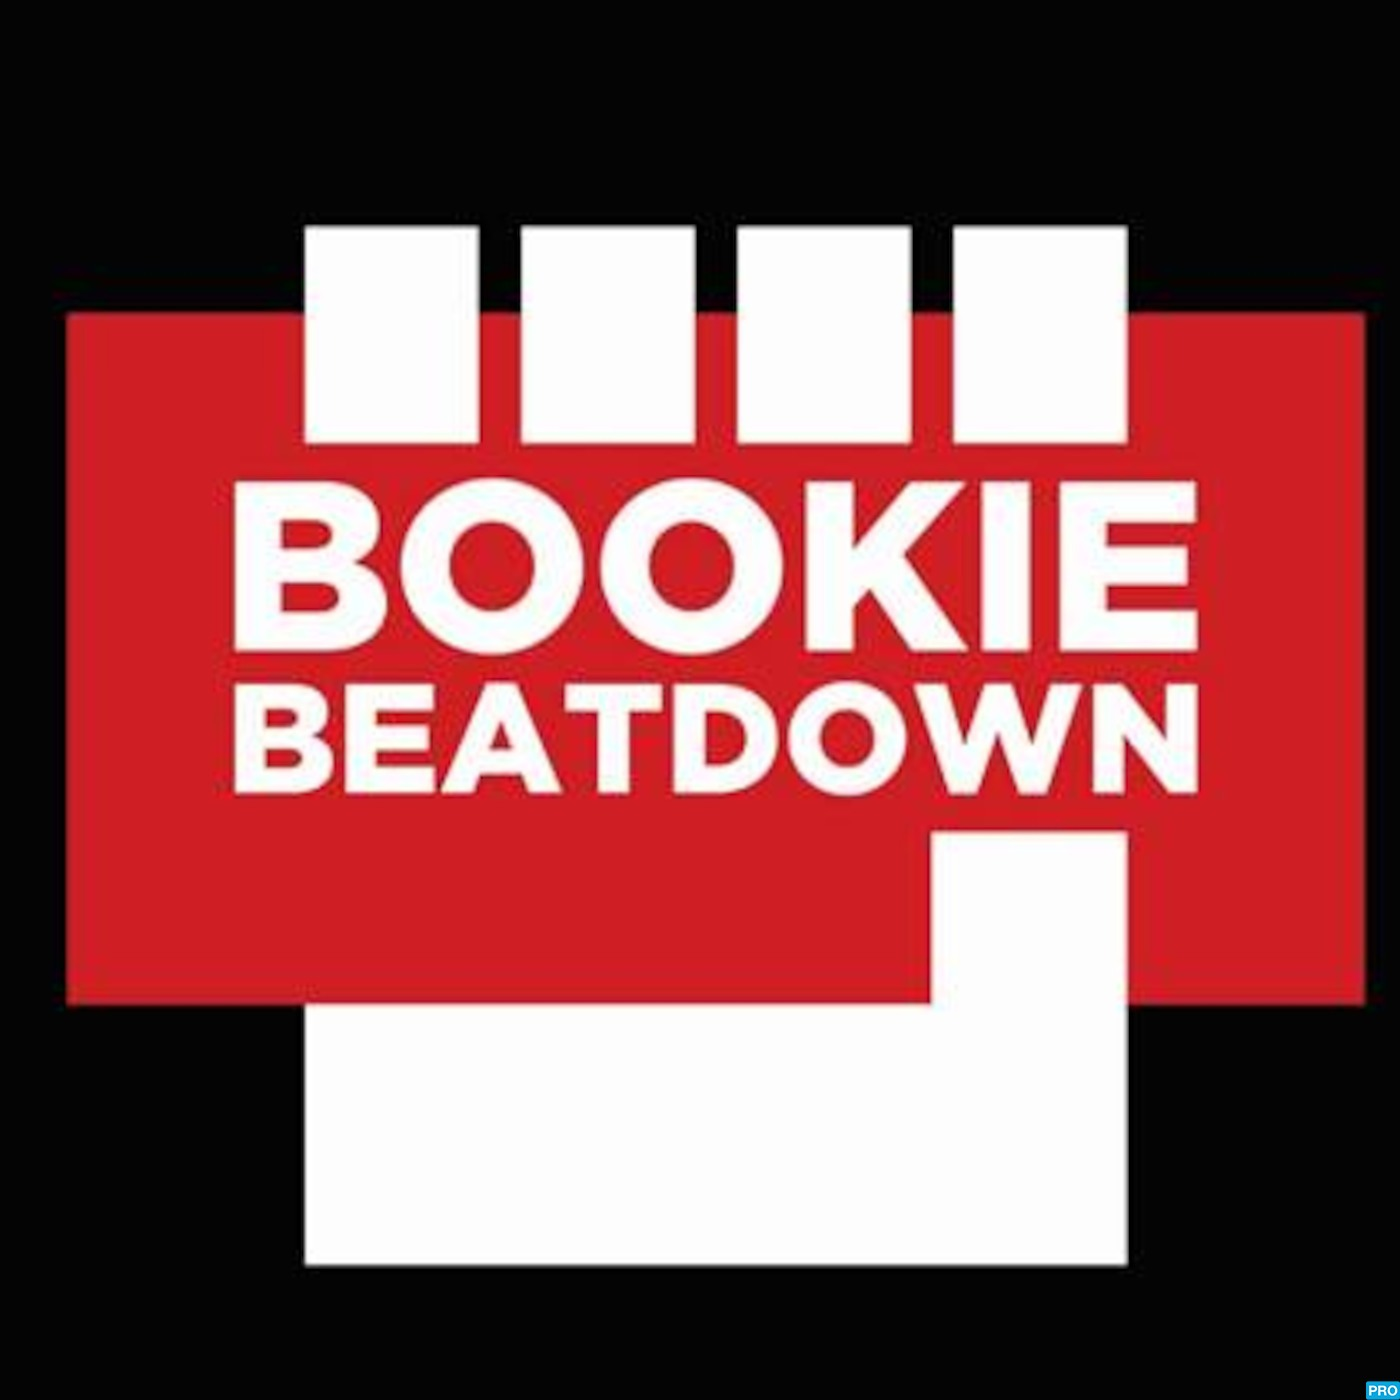 Bookie Beatdown